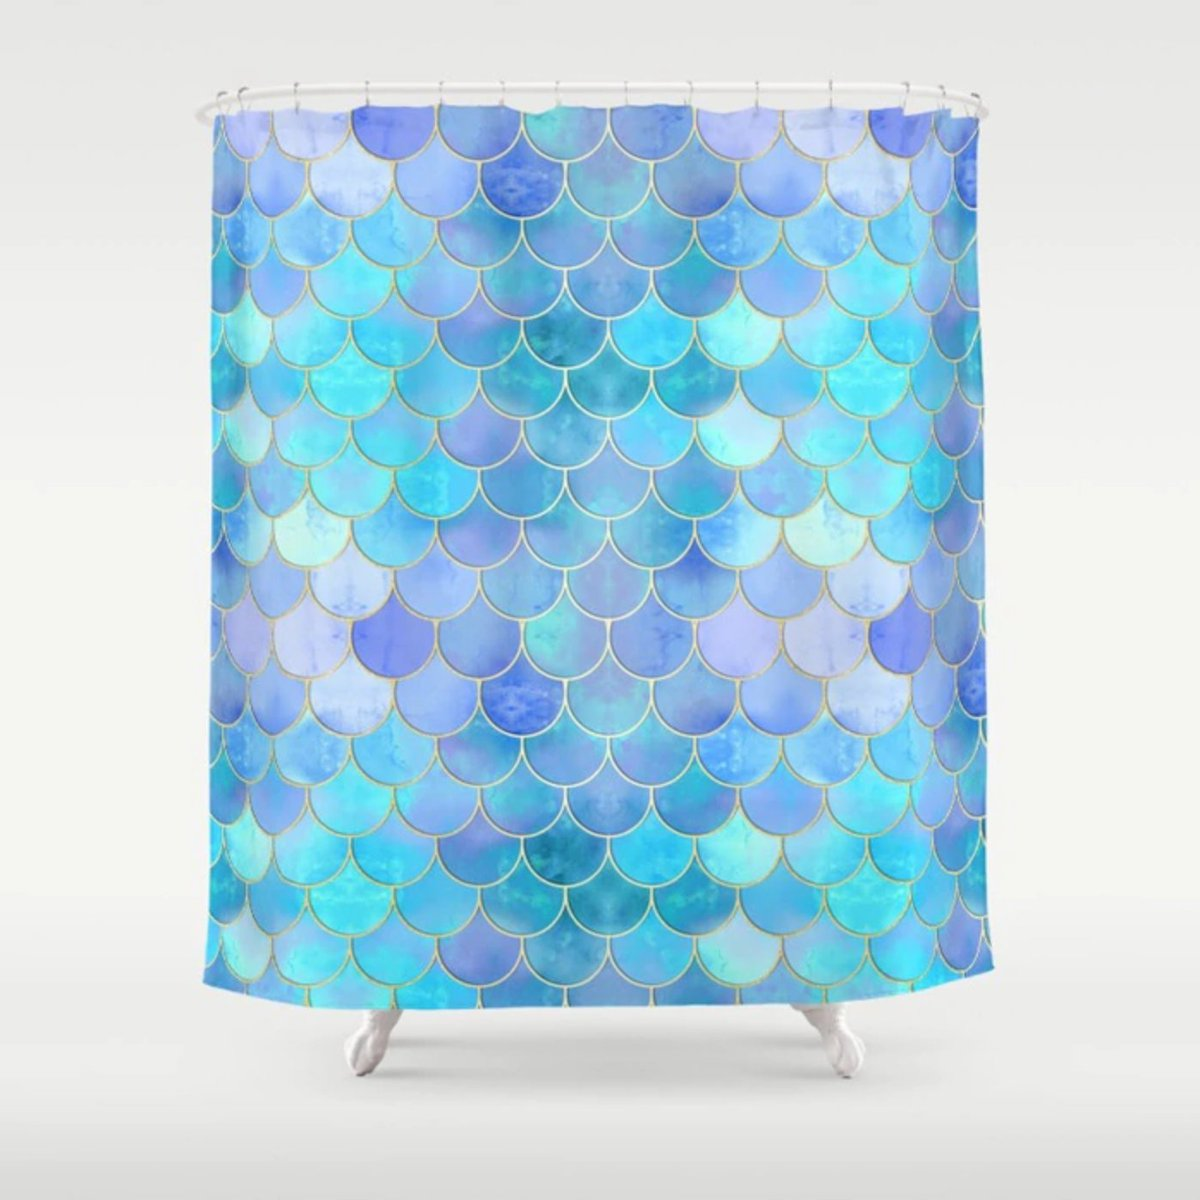 Mermaid Scale Shower Curtain Tanya Legere On Twitter